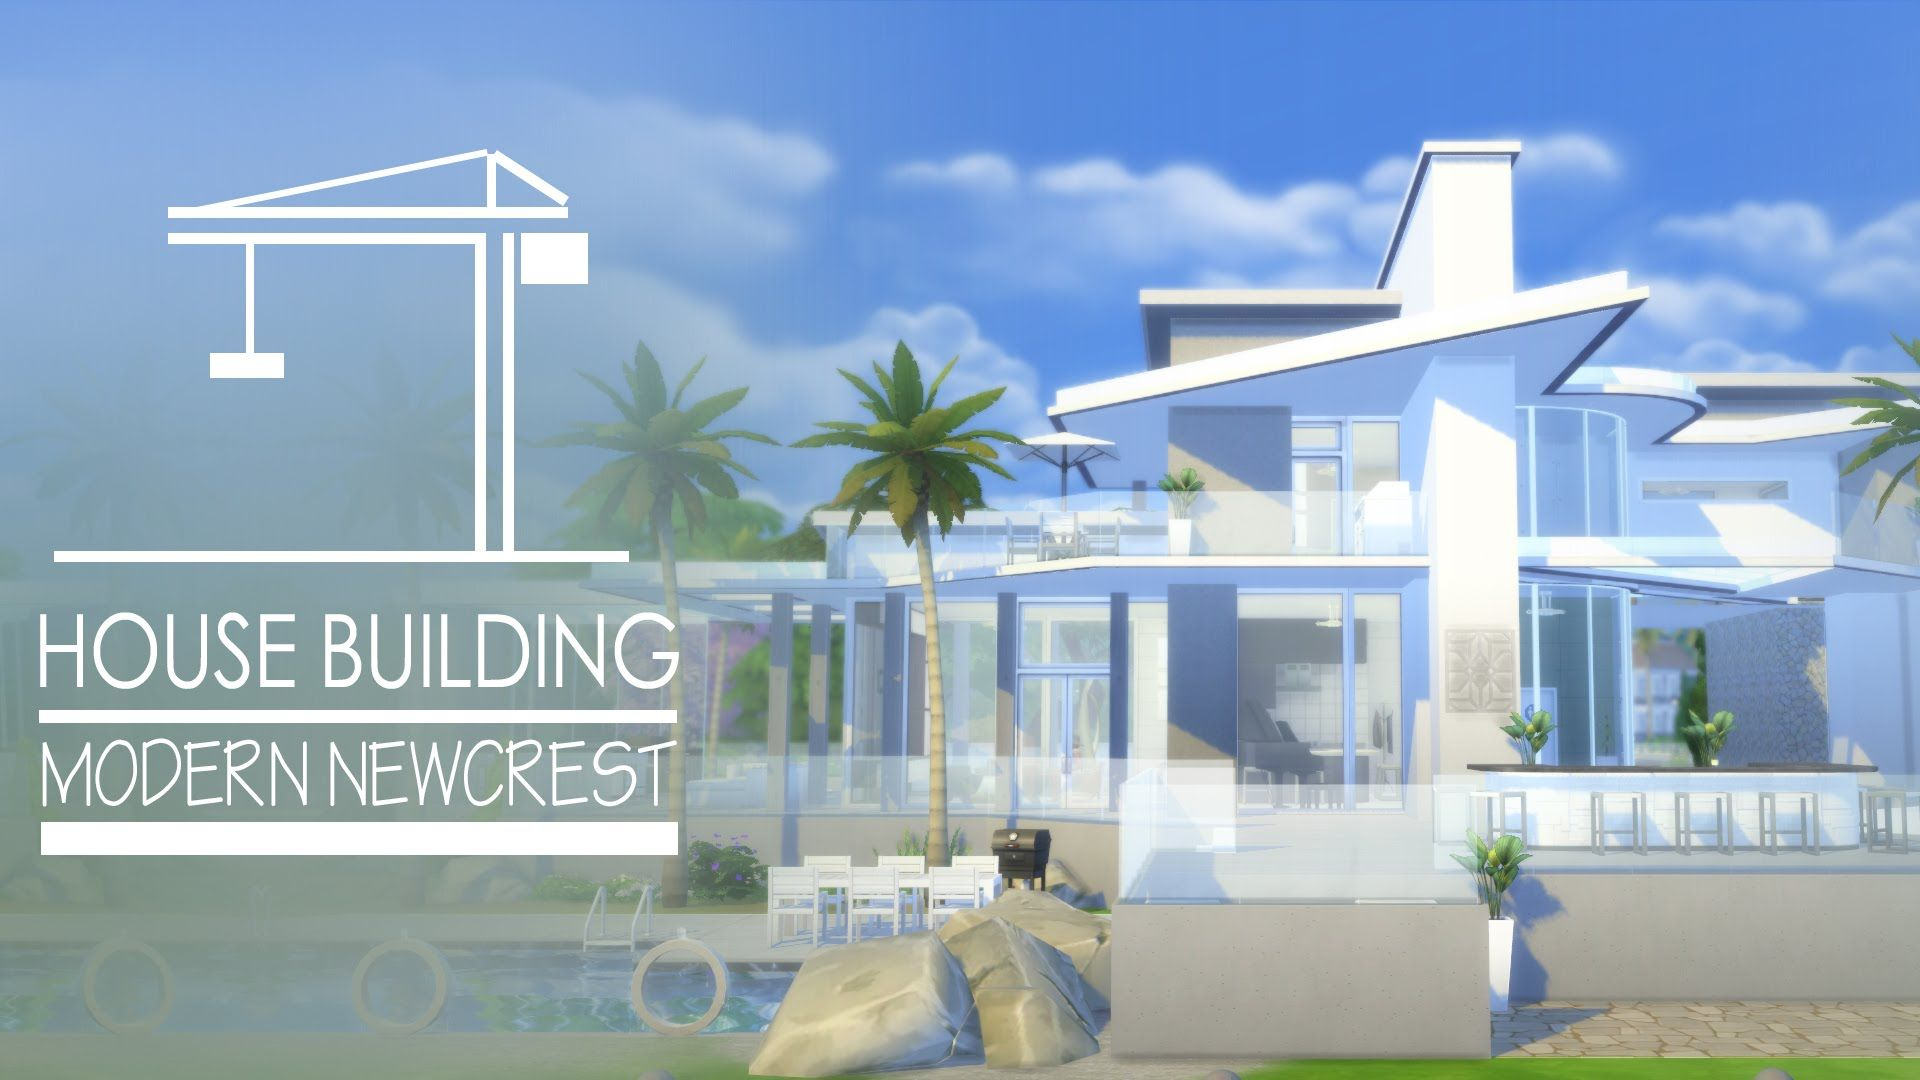 the sims 4 house modern newcrest ideas for the house pinterest